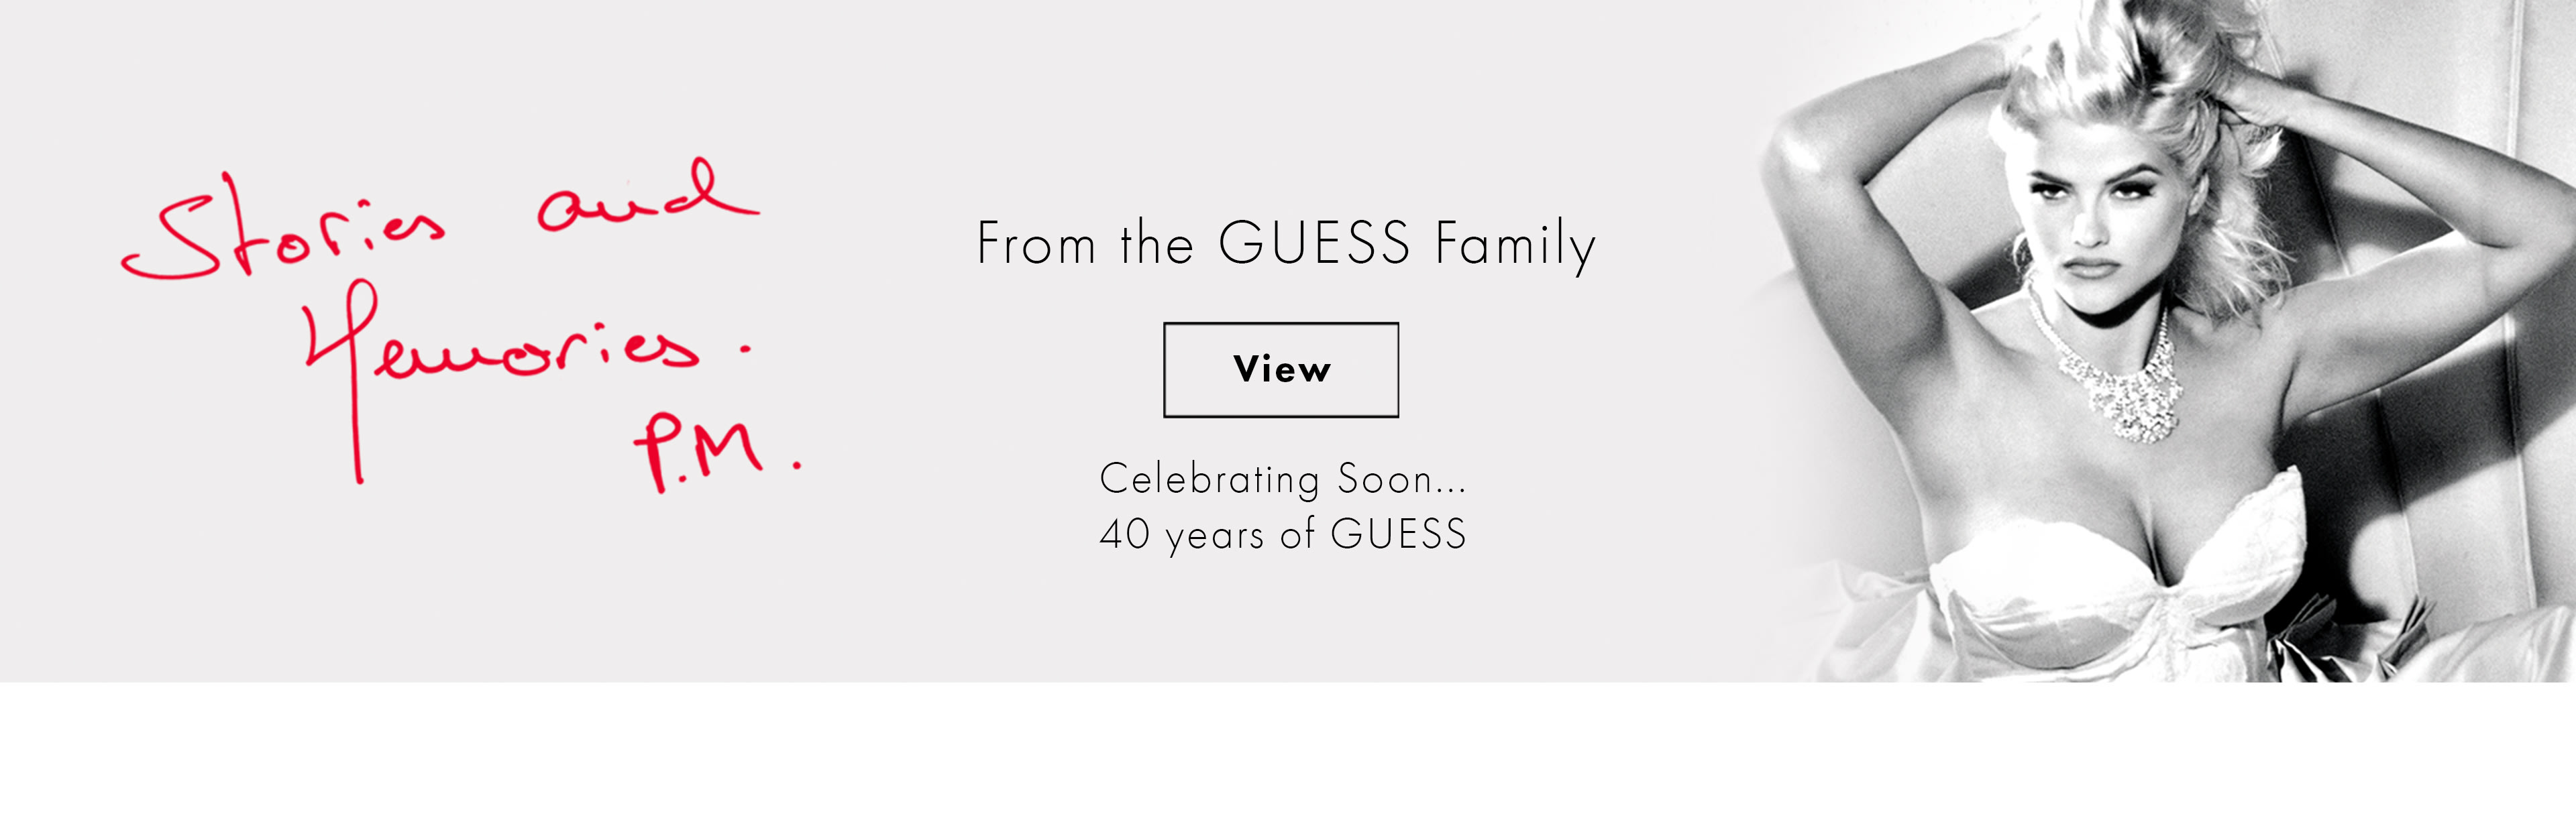 The GUESS Family